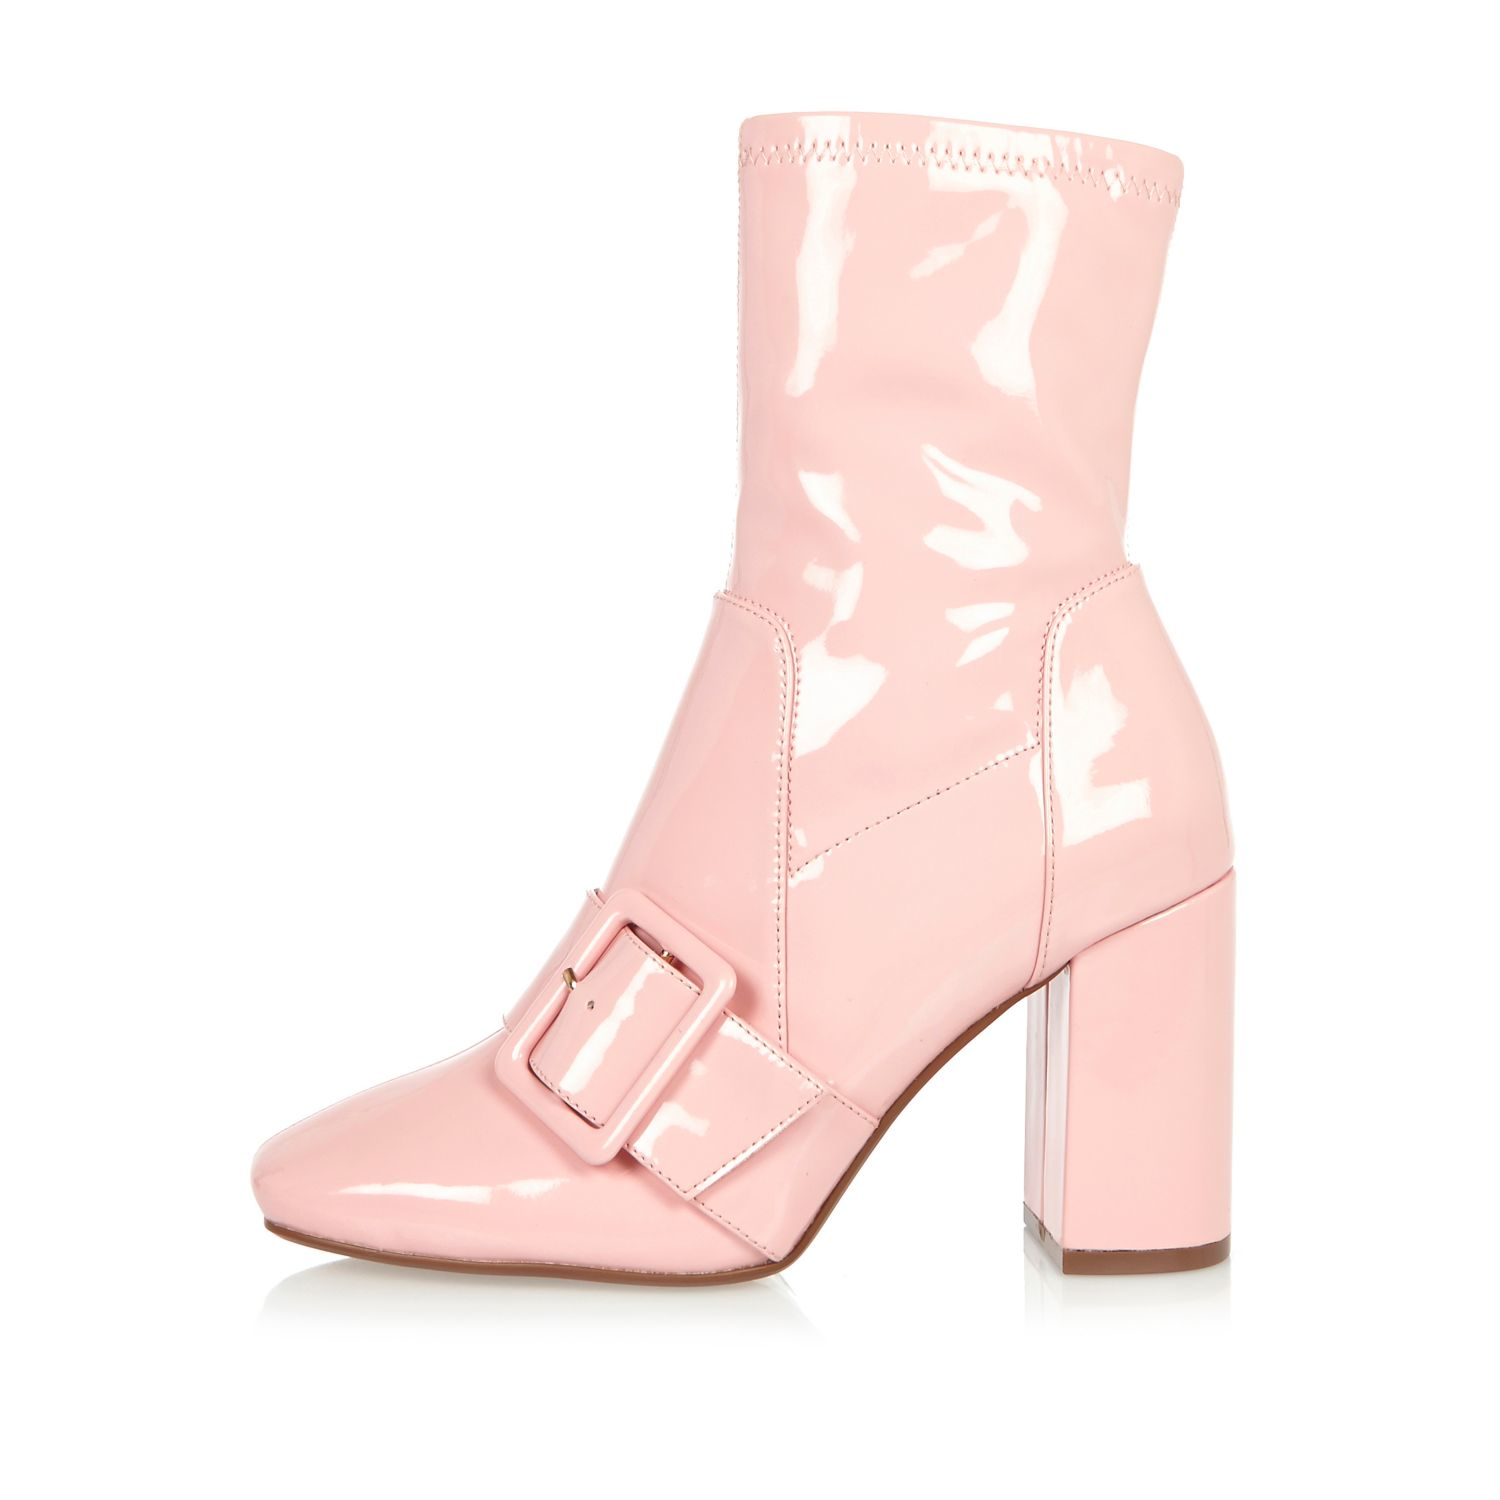 Will Patent Leather Shoes Stretch